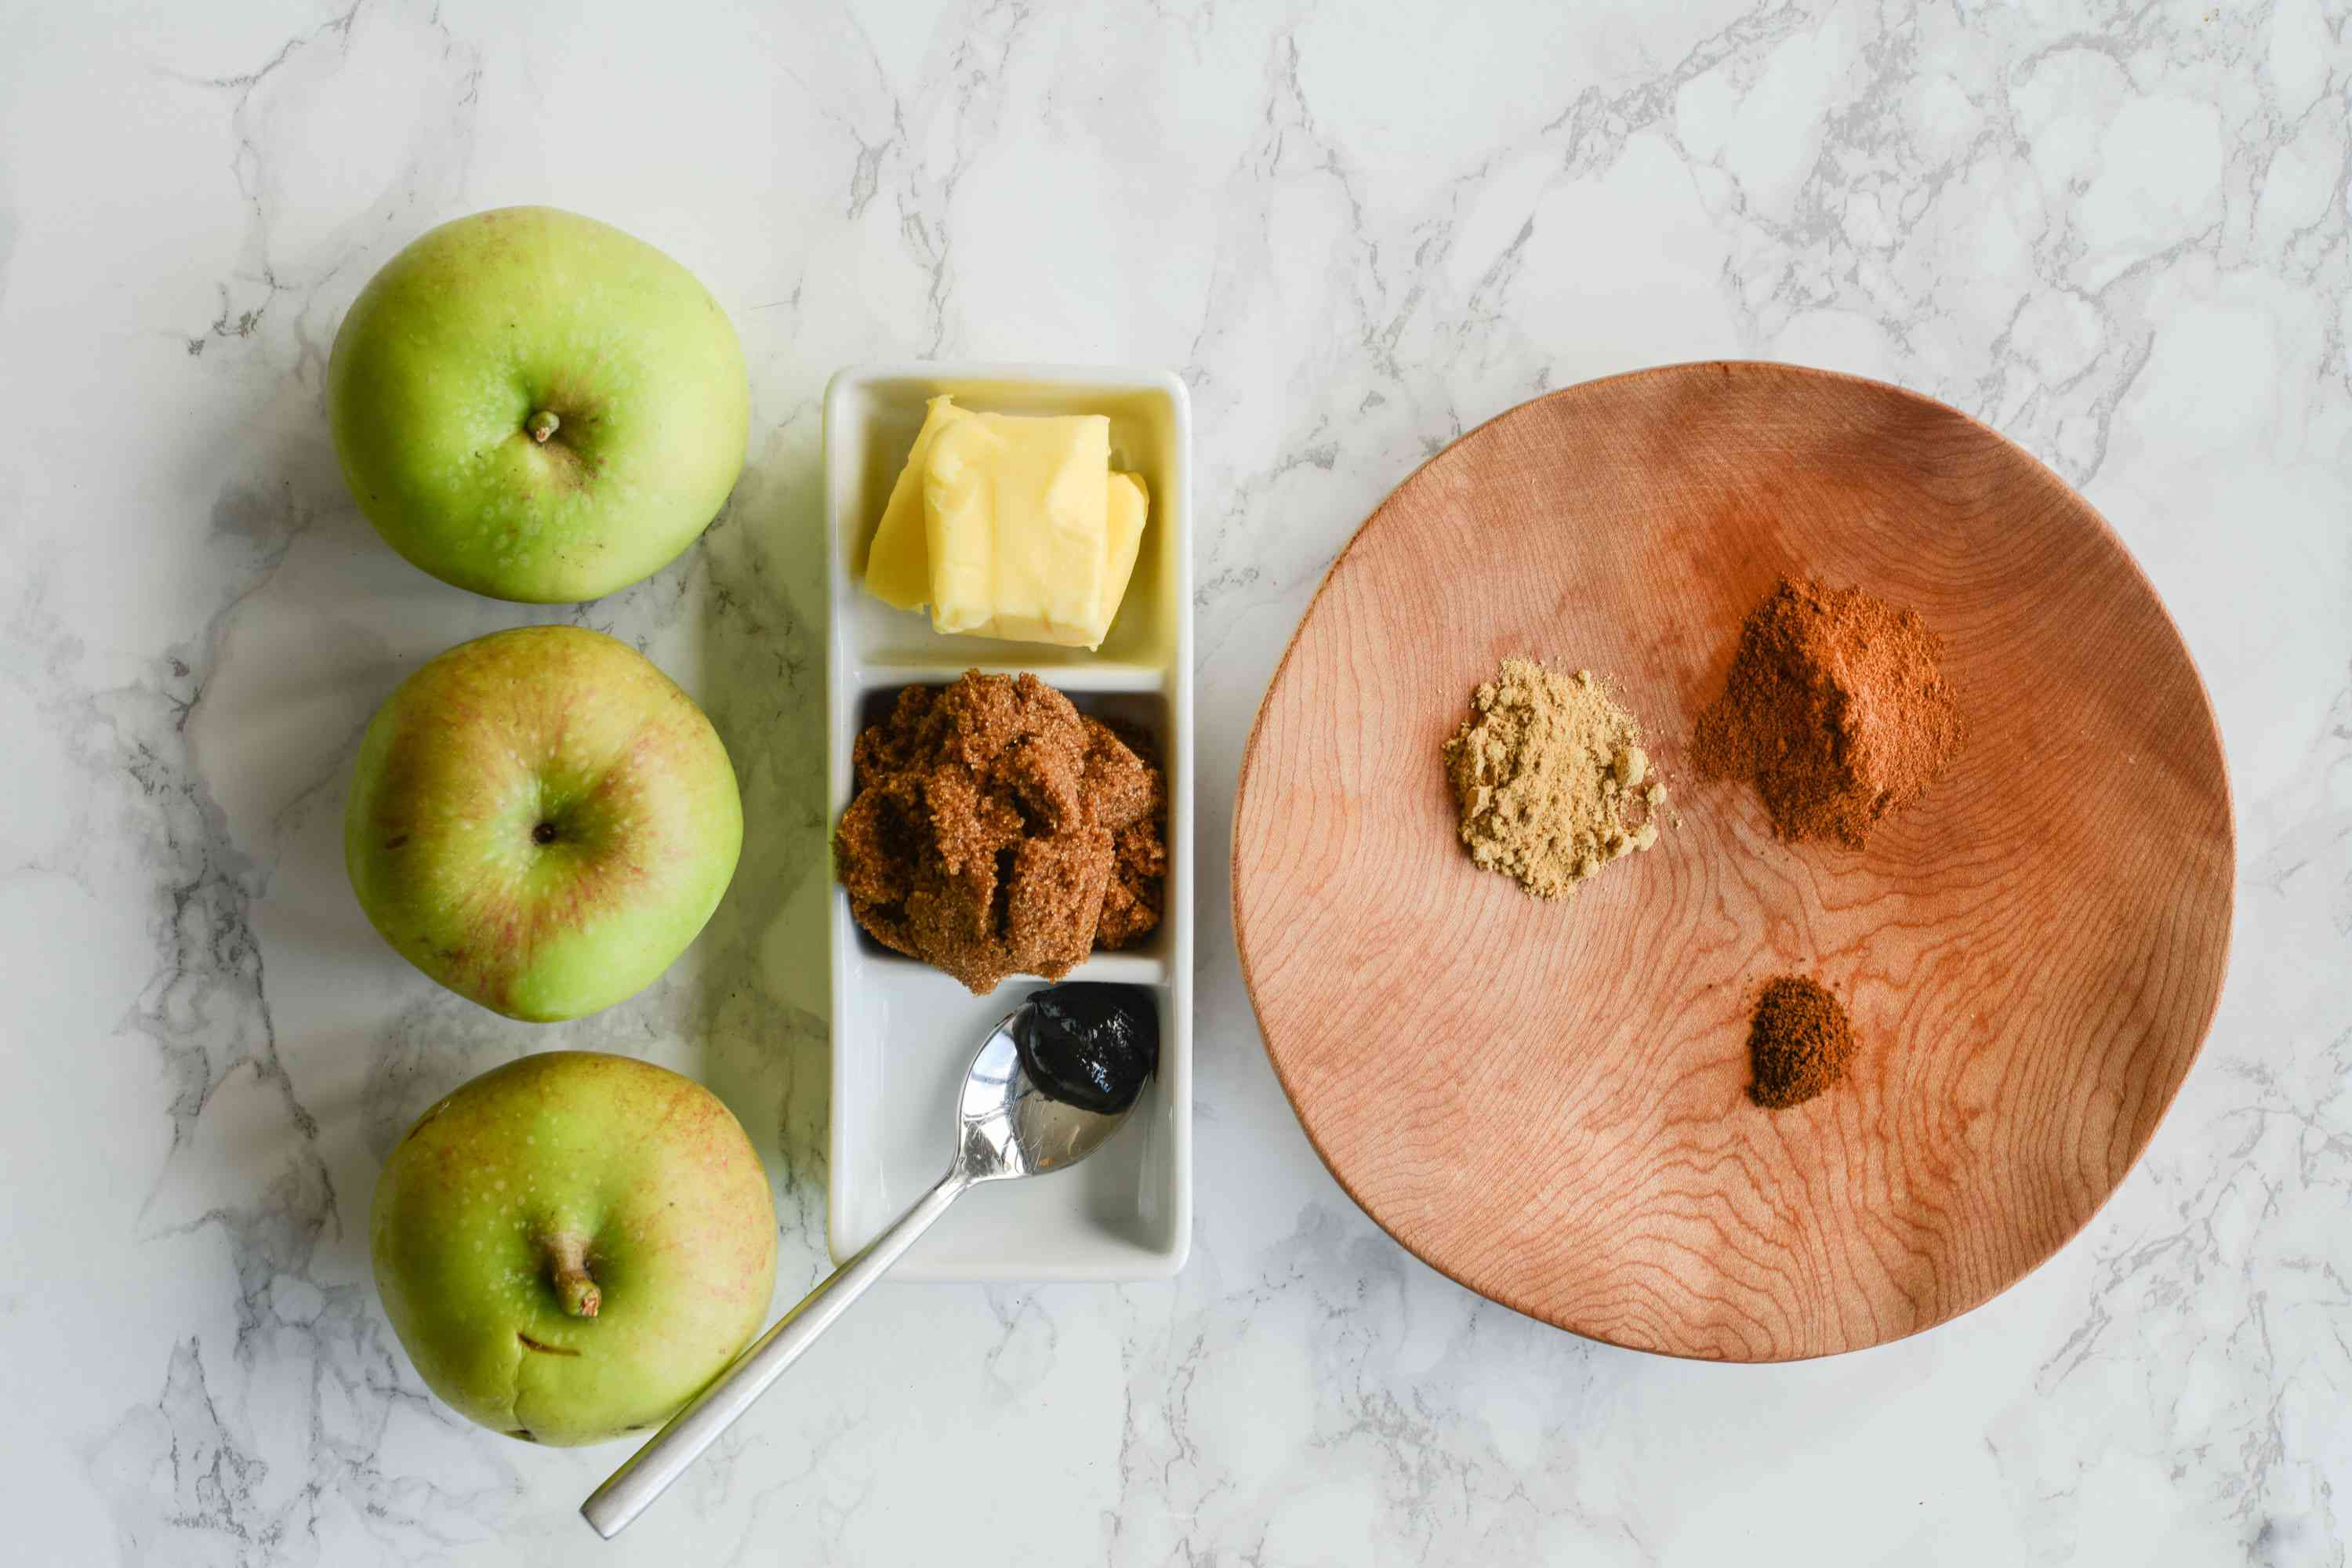 Spiced apple compote ingredients